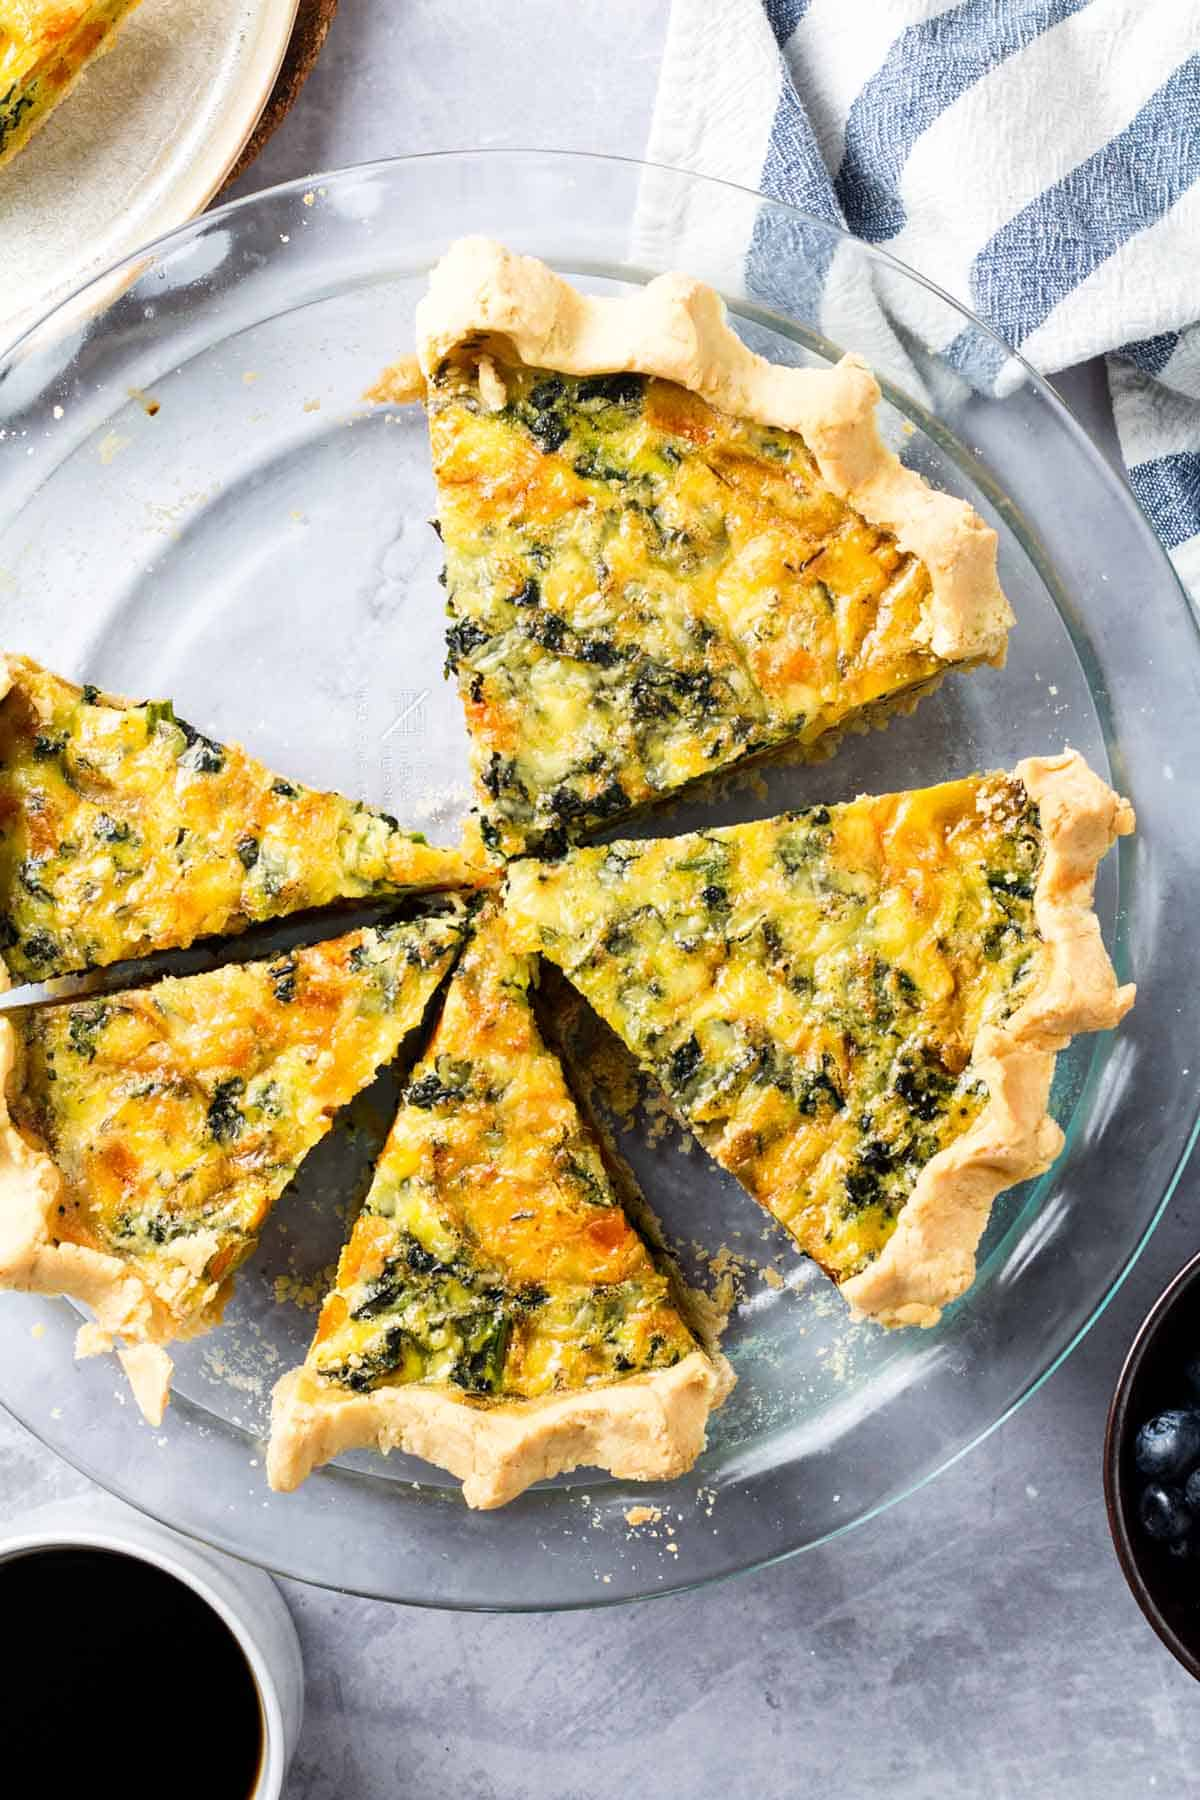 Birds eye view of five slices of gluten free quiche on a clear plate.